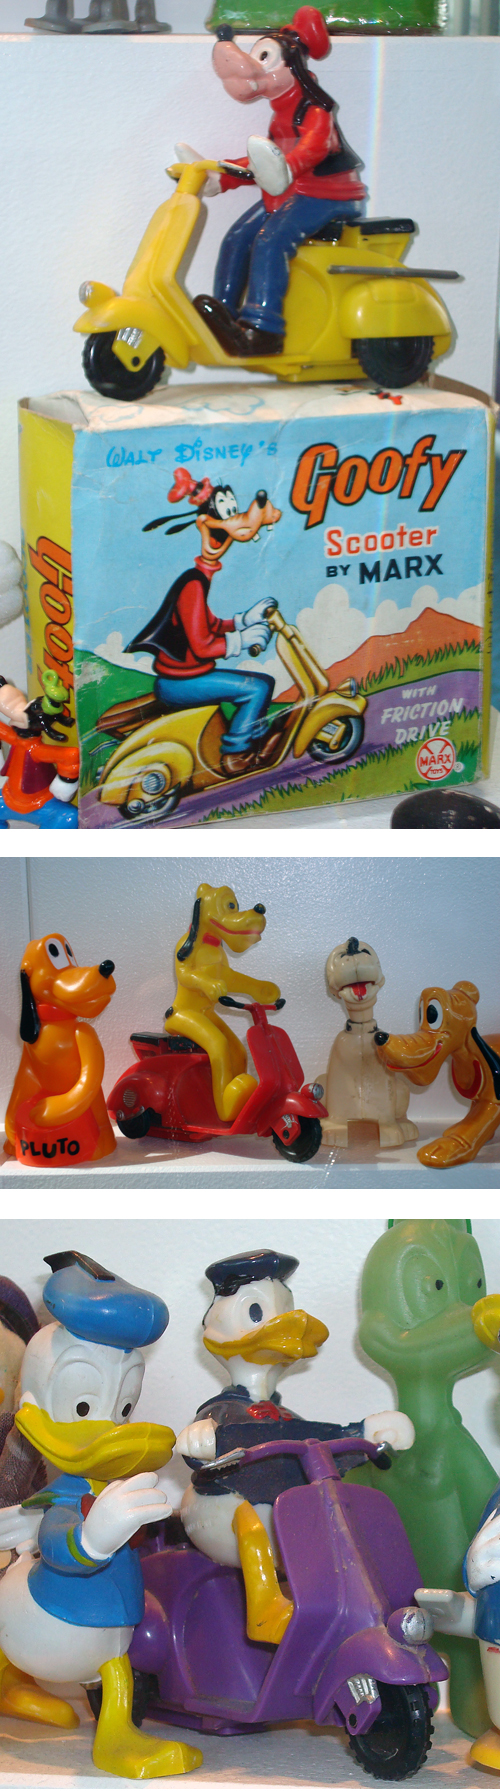 Disney Marx Scooter Vespa Collection Goofy Pluto Donald Duck